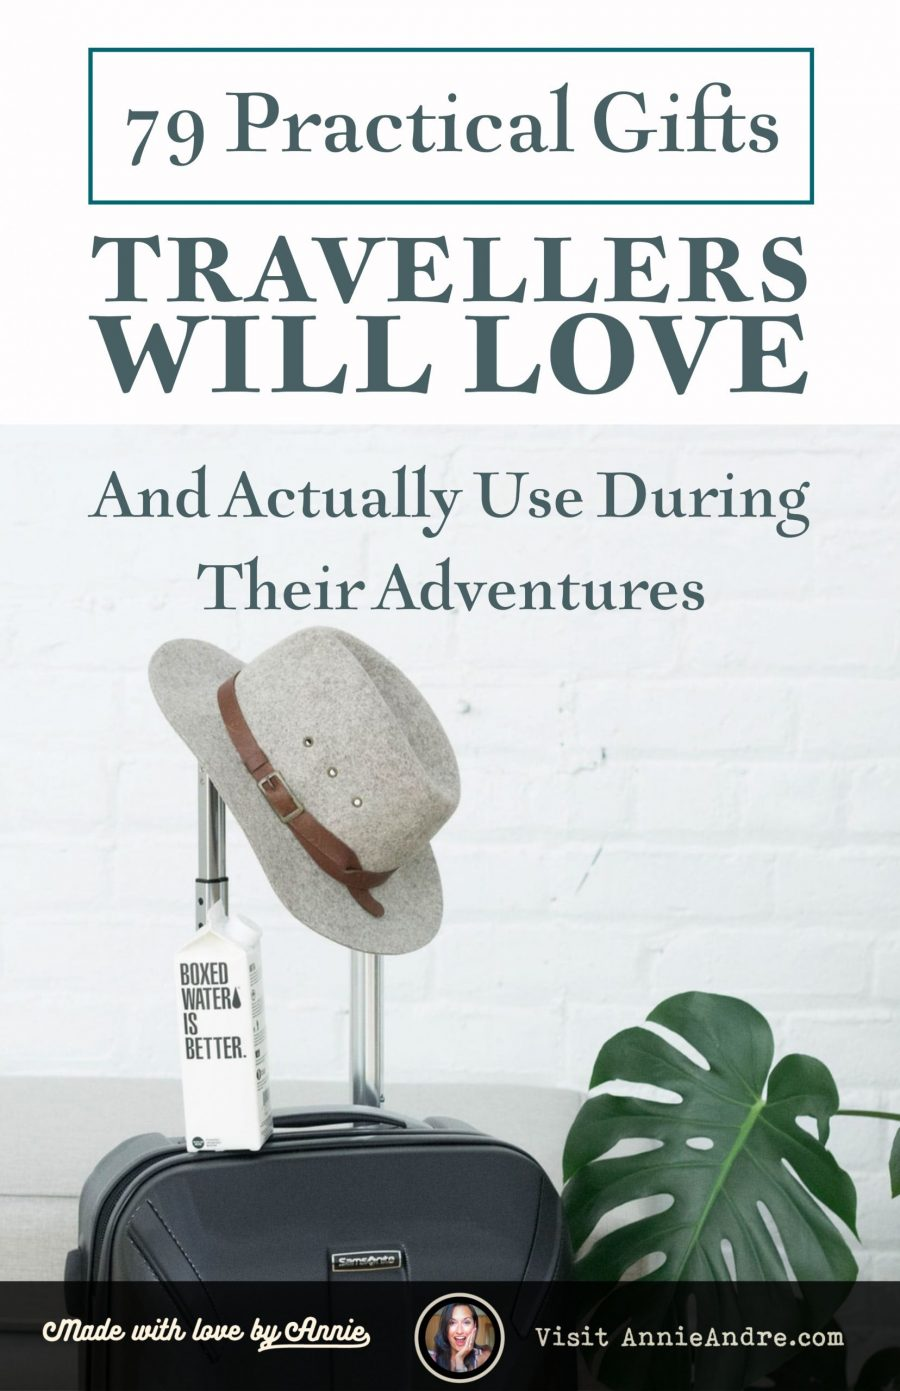 79 Practical Gifts Travellers will love and actually use on their adventures abroad